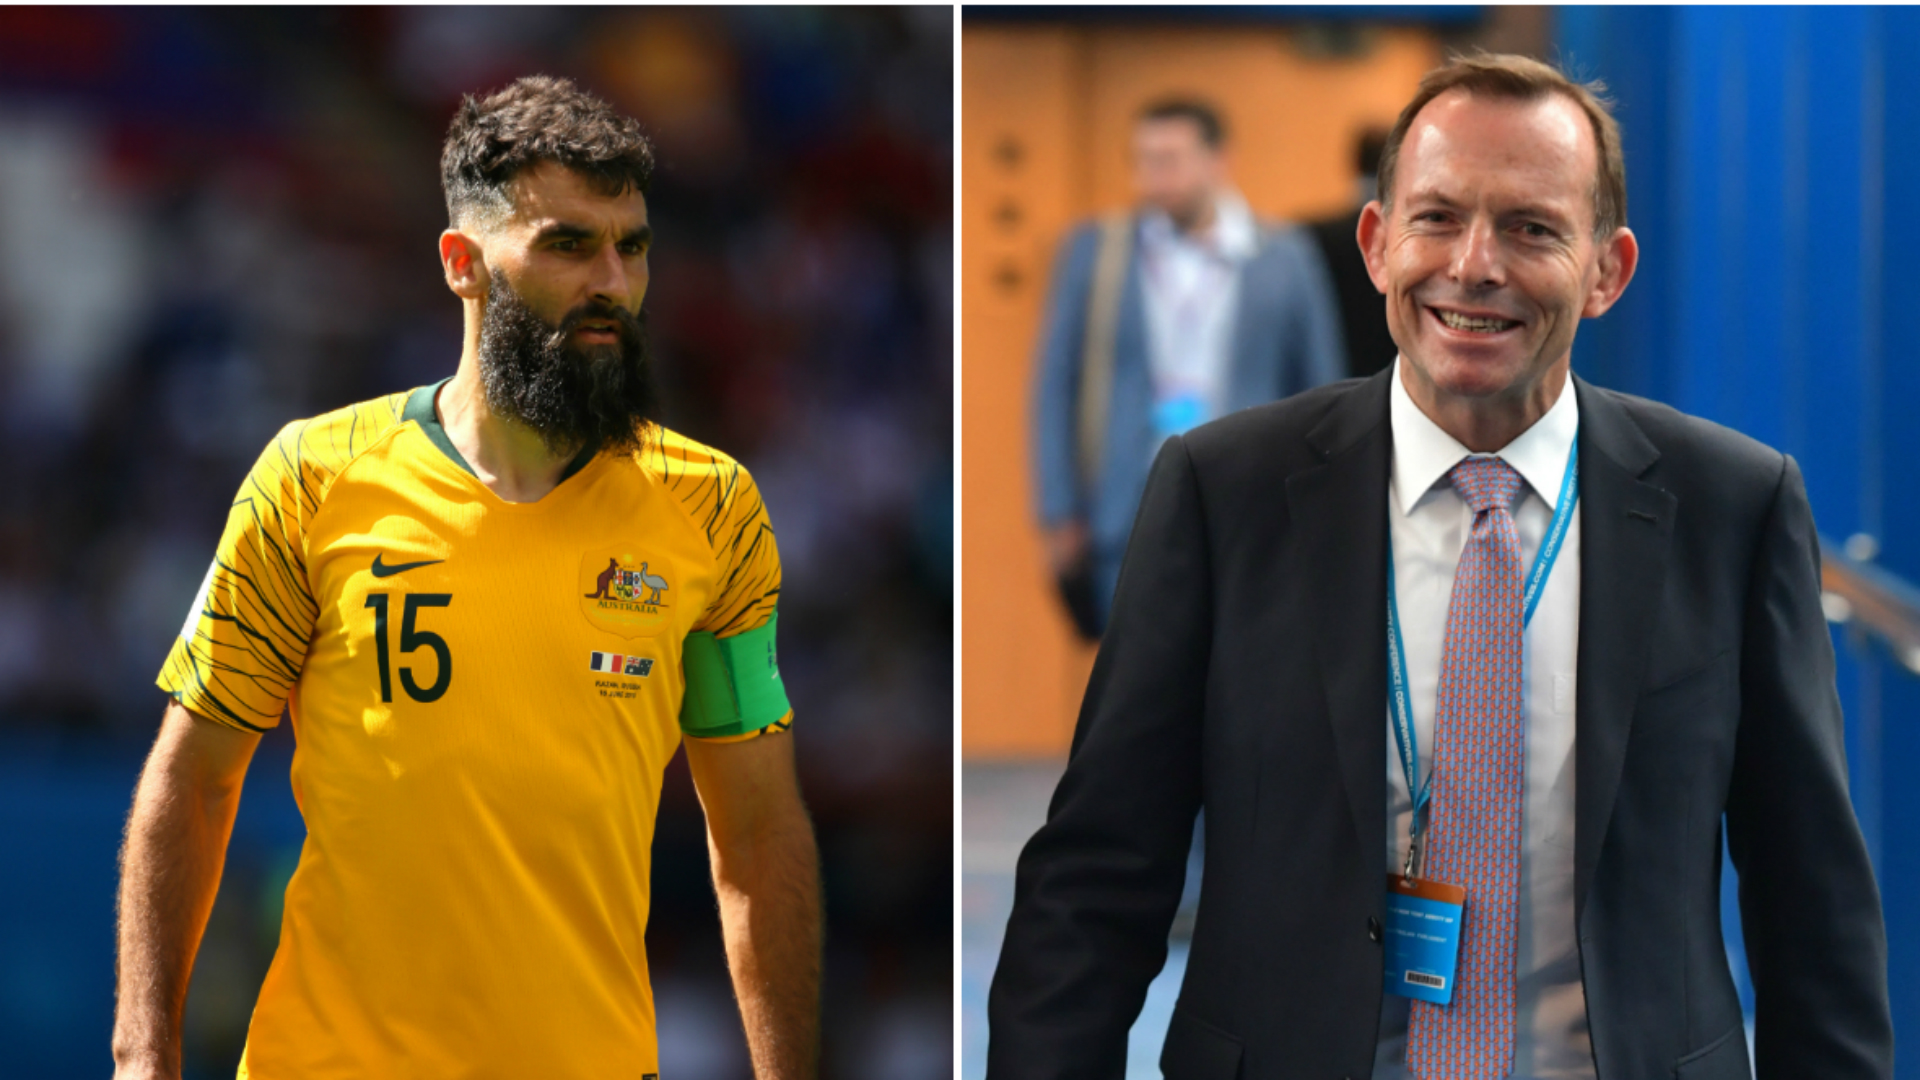 PM seeking World Cup assurances from Optus